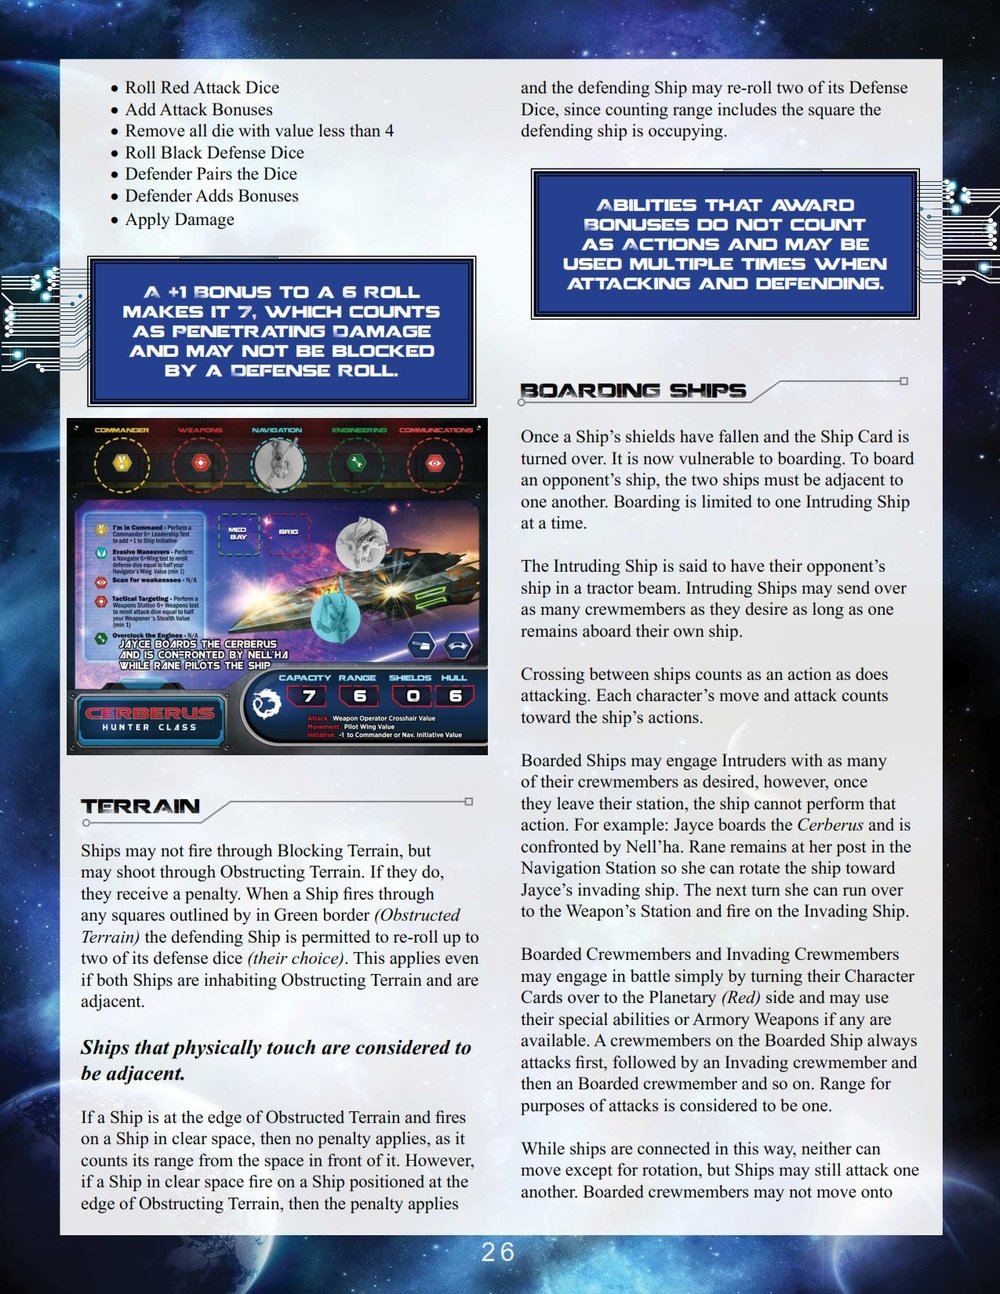 Renegades_Rule_Book_027.jpg